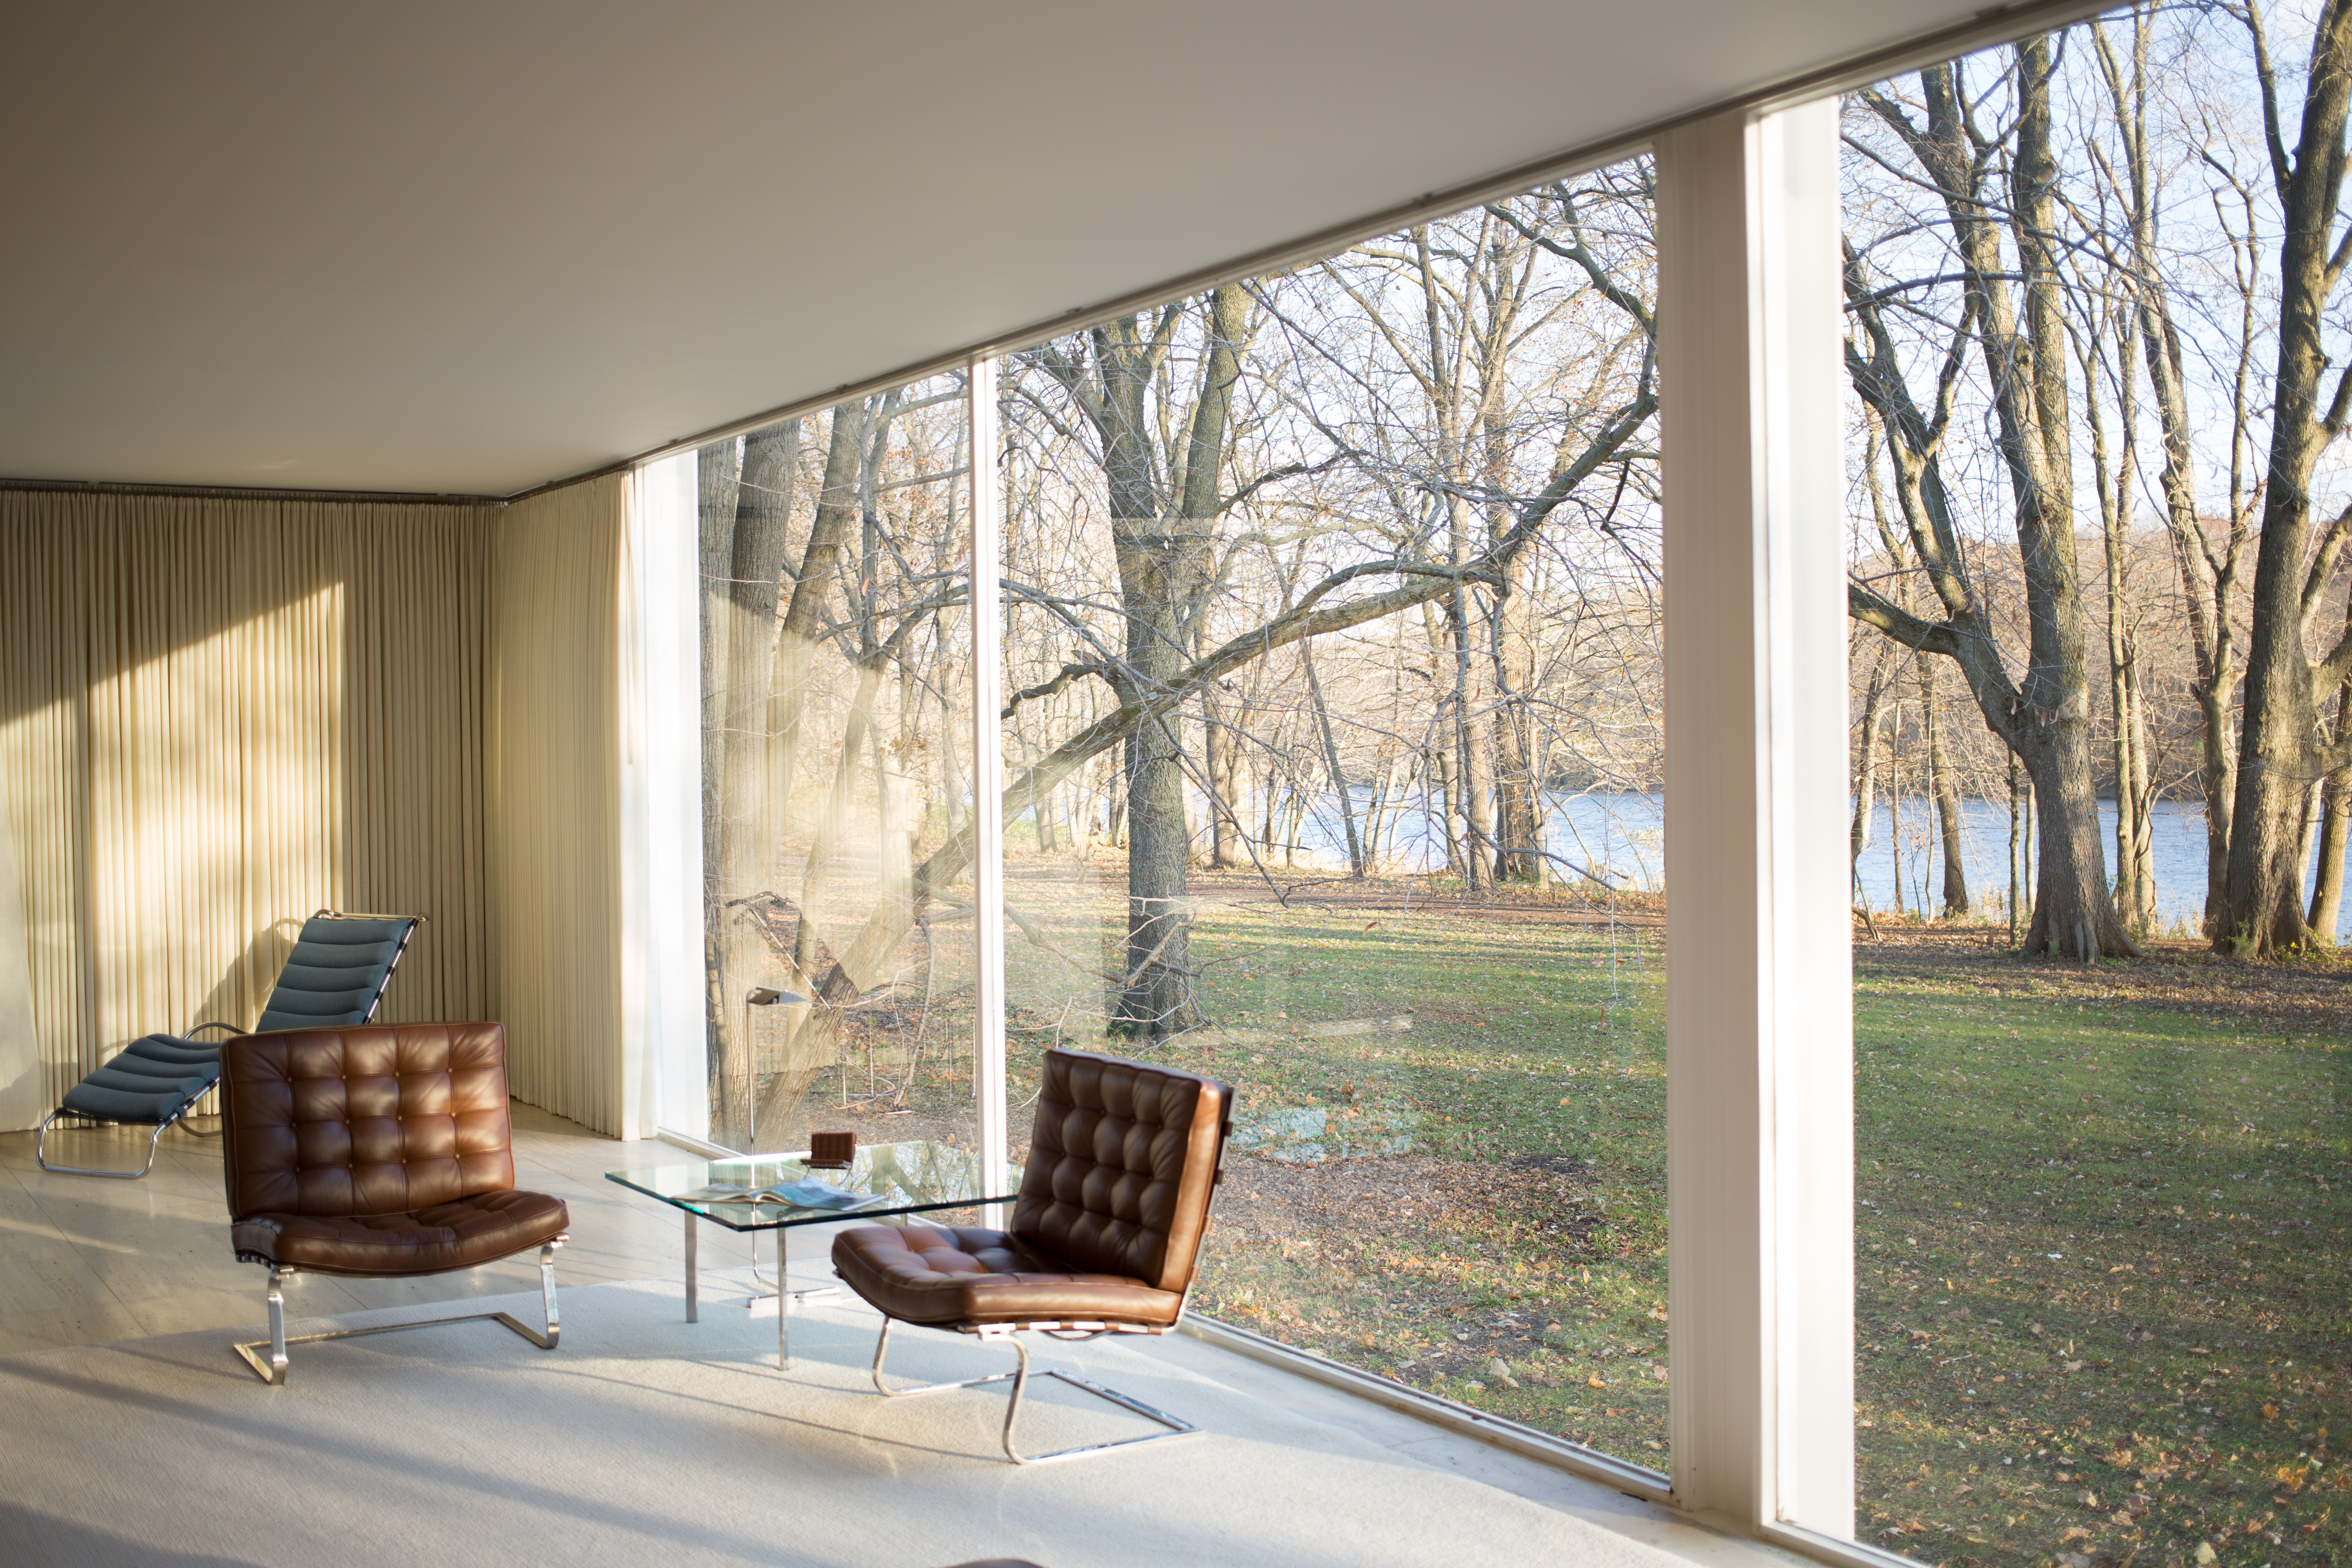 FileFarnsworth House By Mies Van Der Rohe Interiorjpg